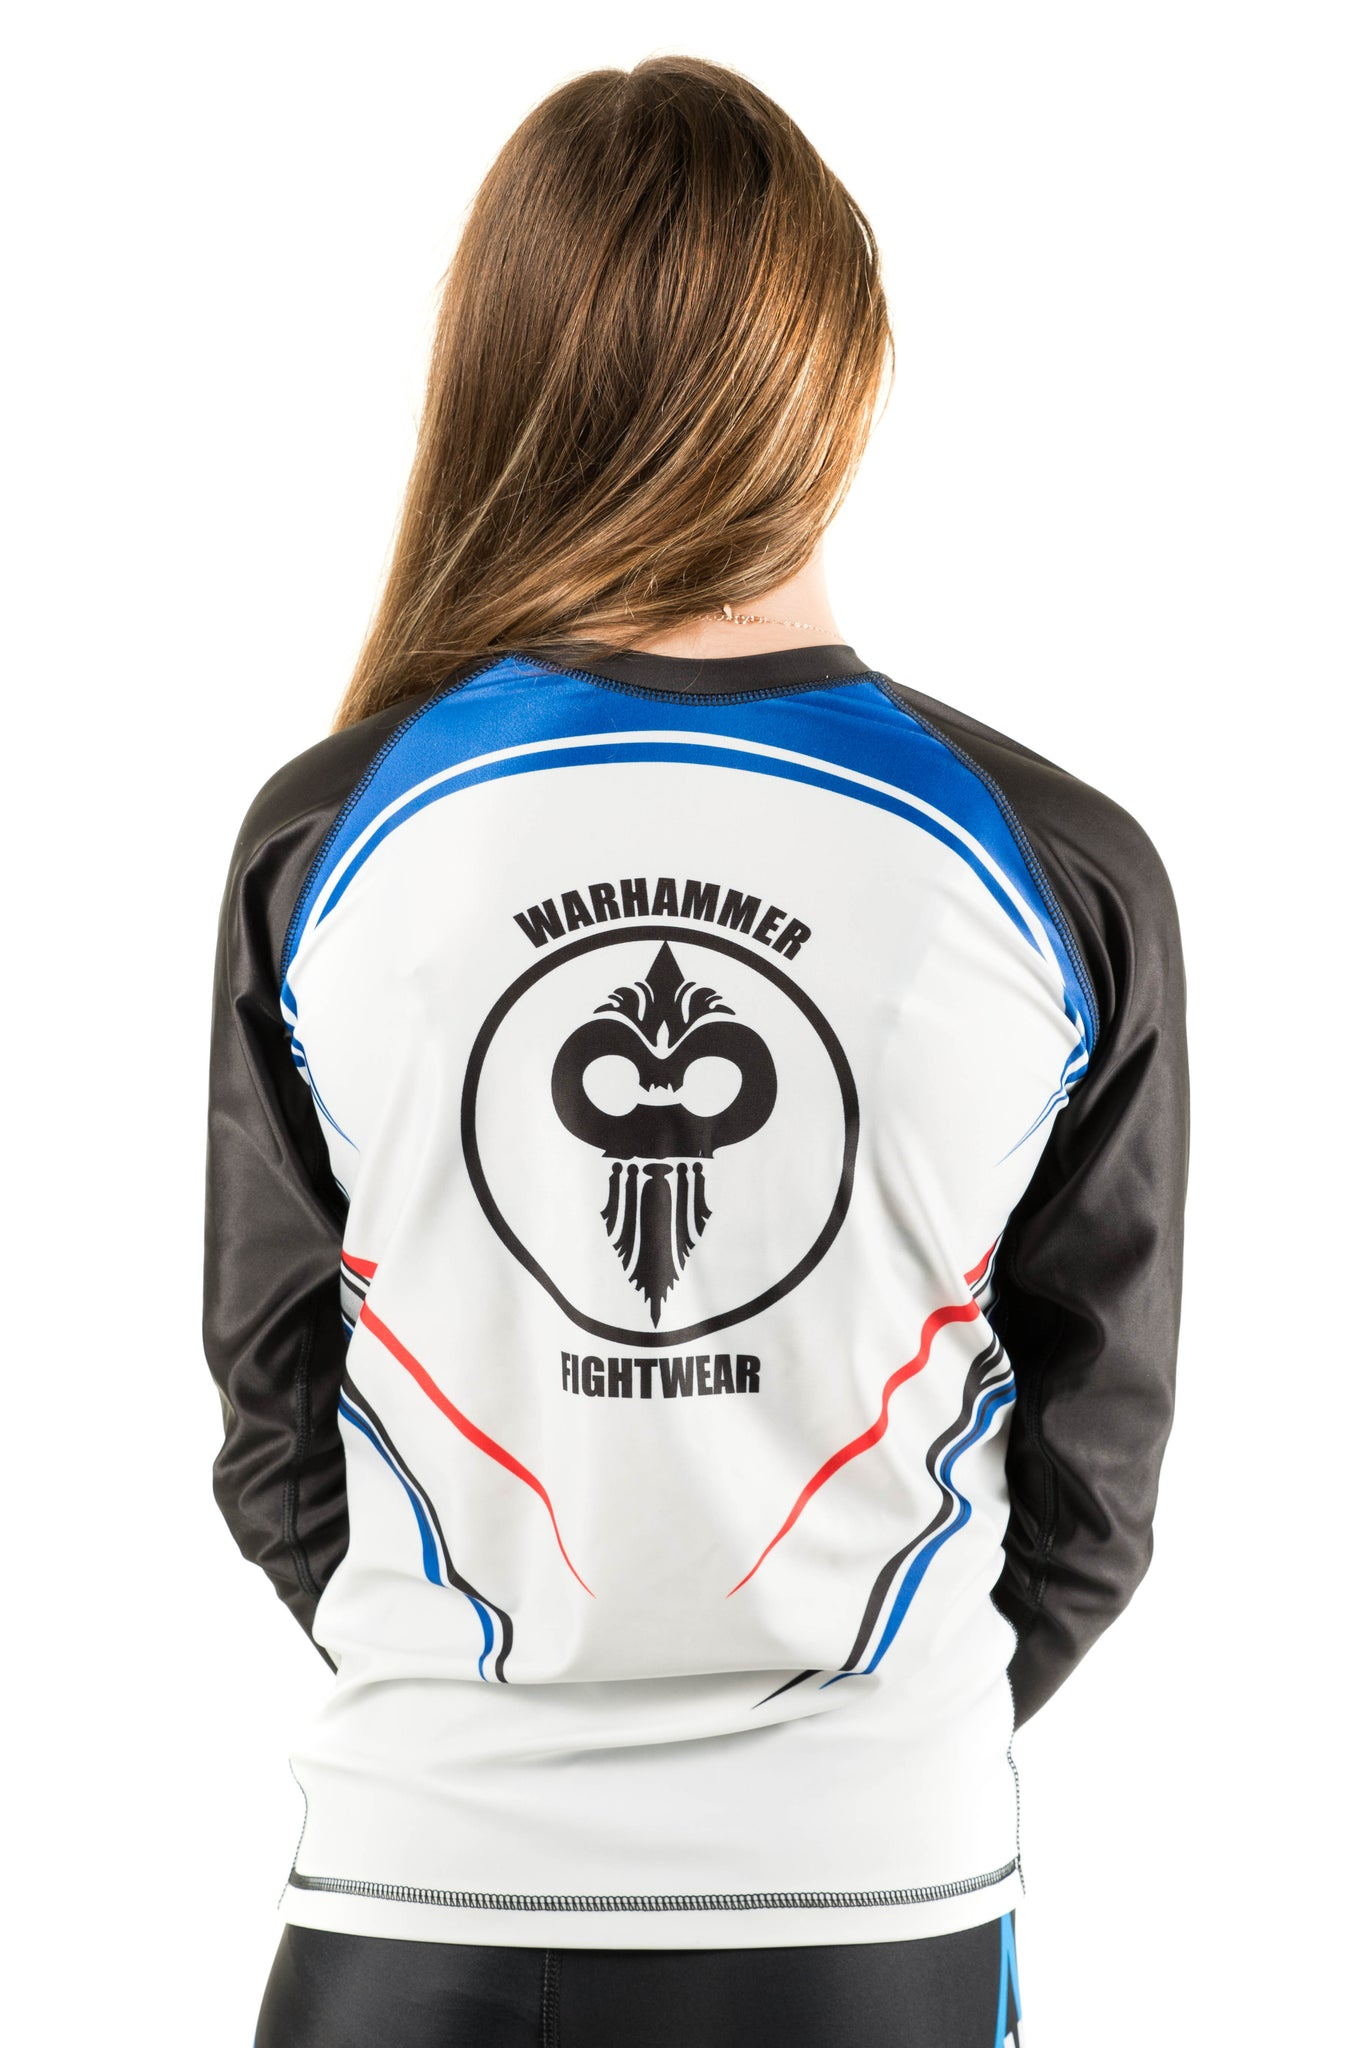 American Flag Rash Guard White Background (Adult Sizes Unisex) - Warhammer Fightwear